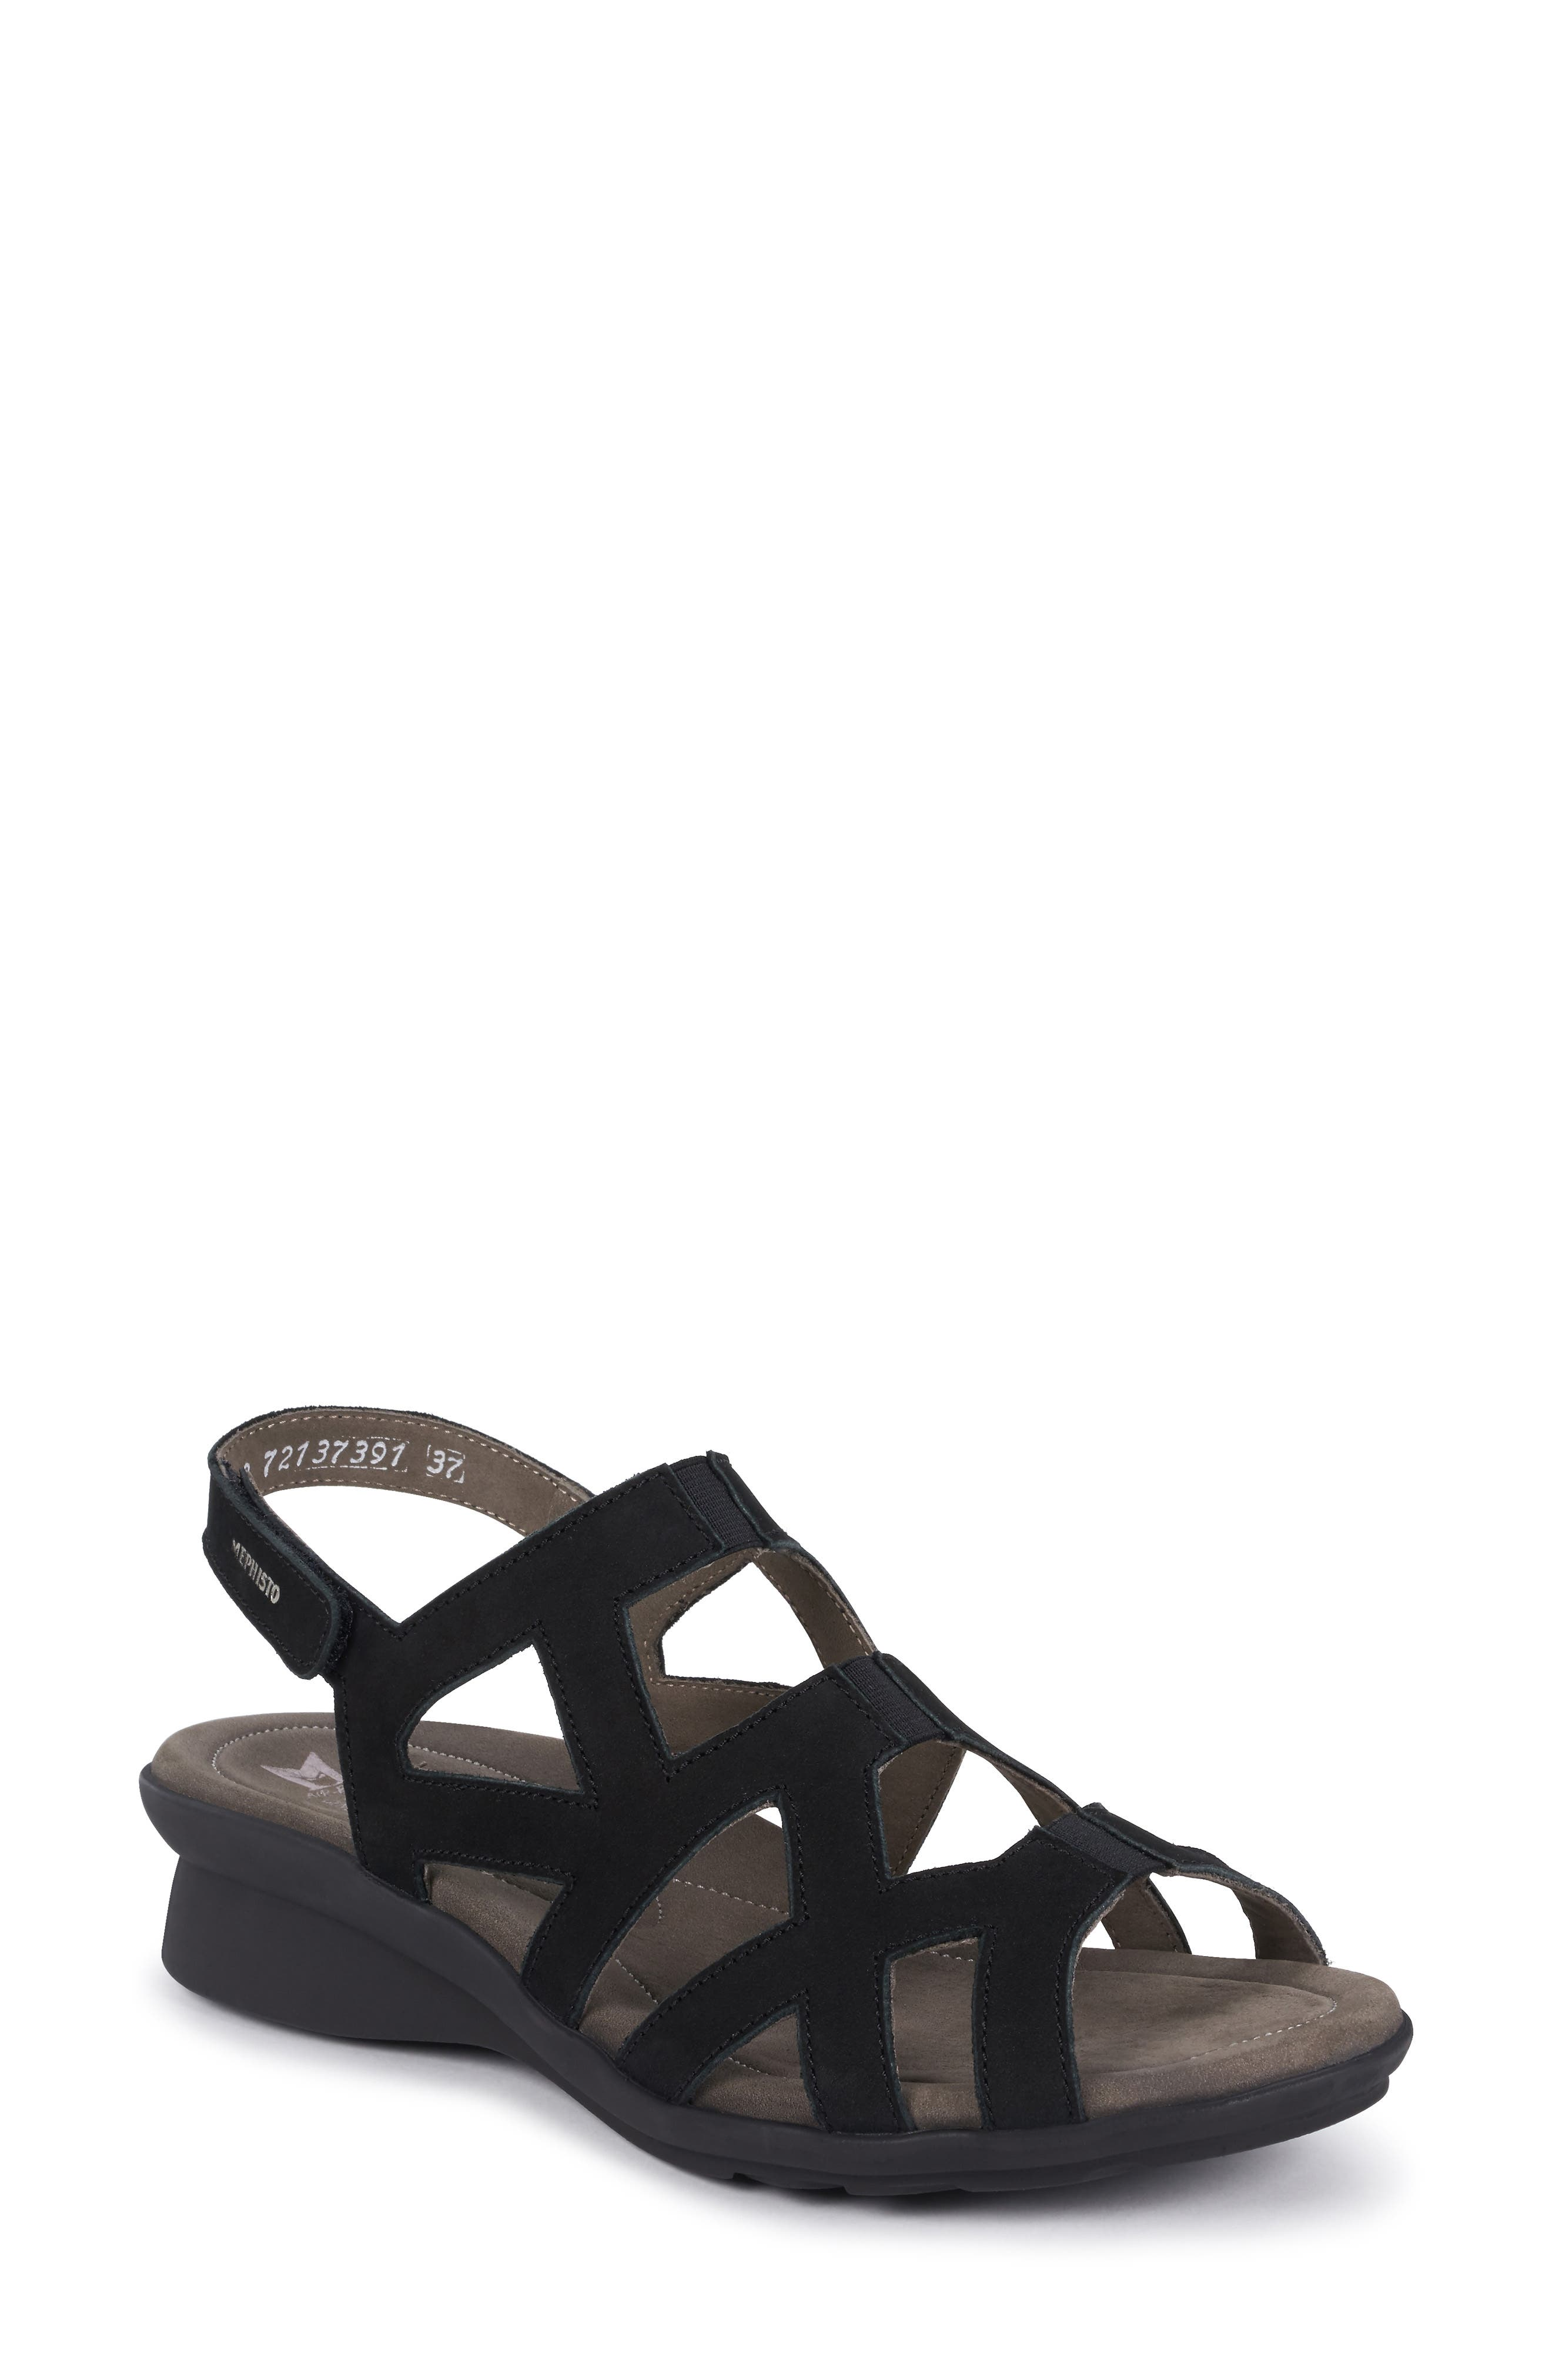 MEPHISTO Pamela Sandal, Main, color, BLACK NUBUCK